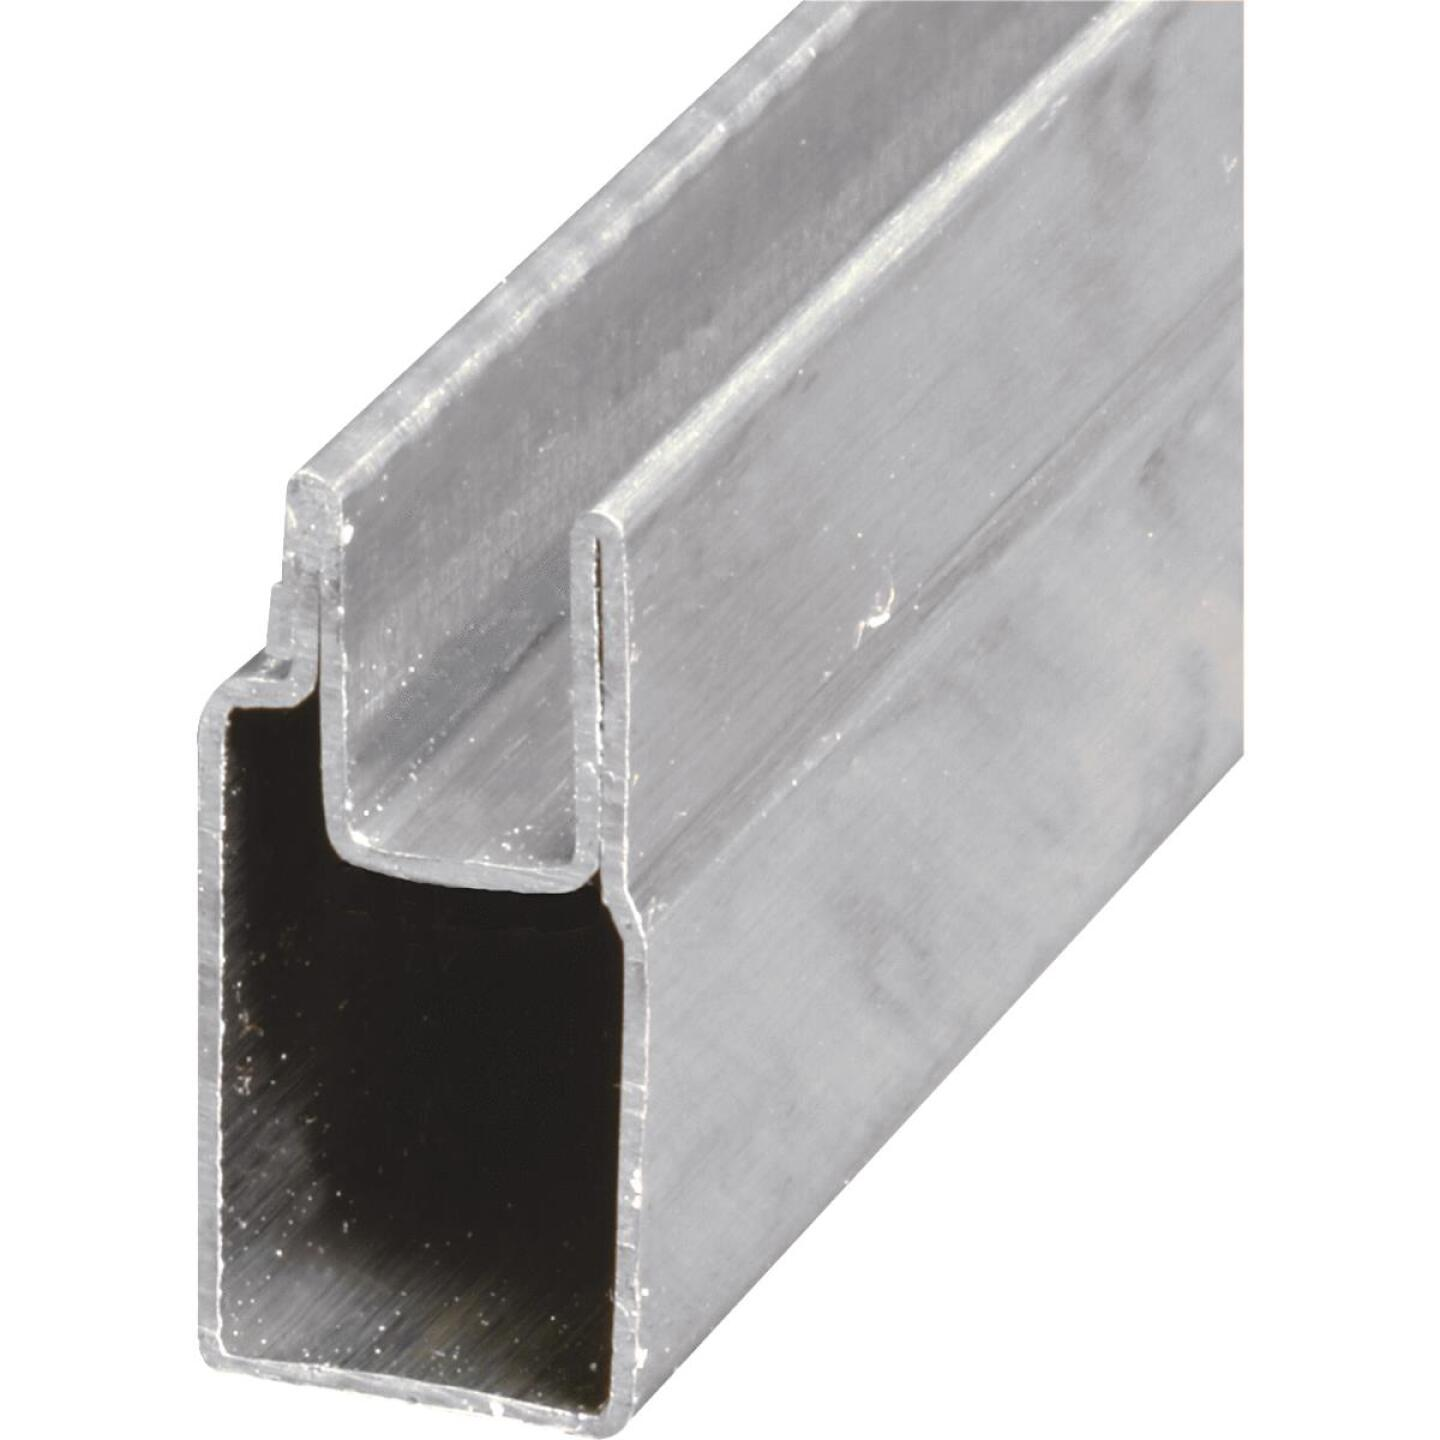 Prime-Line 3/8 In. x 25/32 In. x 94 In. Mill Aluminum Window Frame Image 2